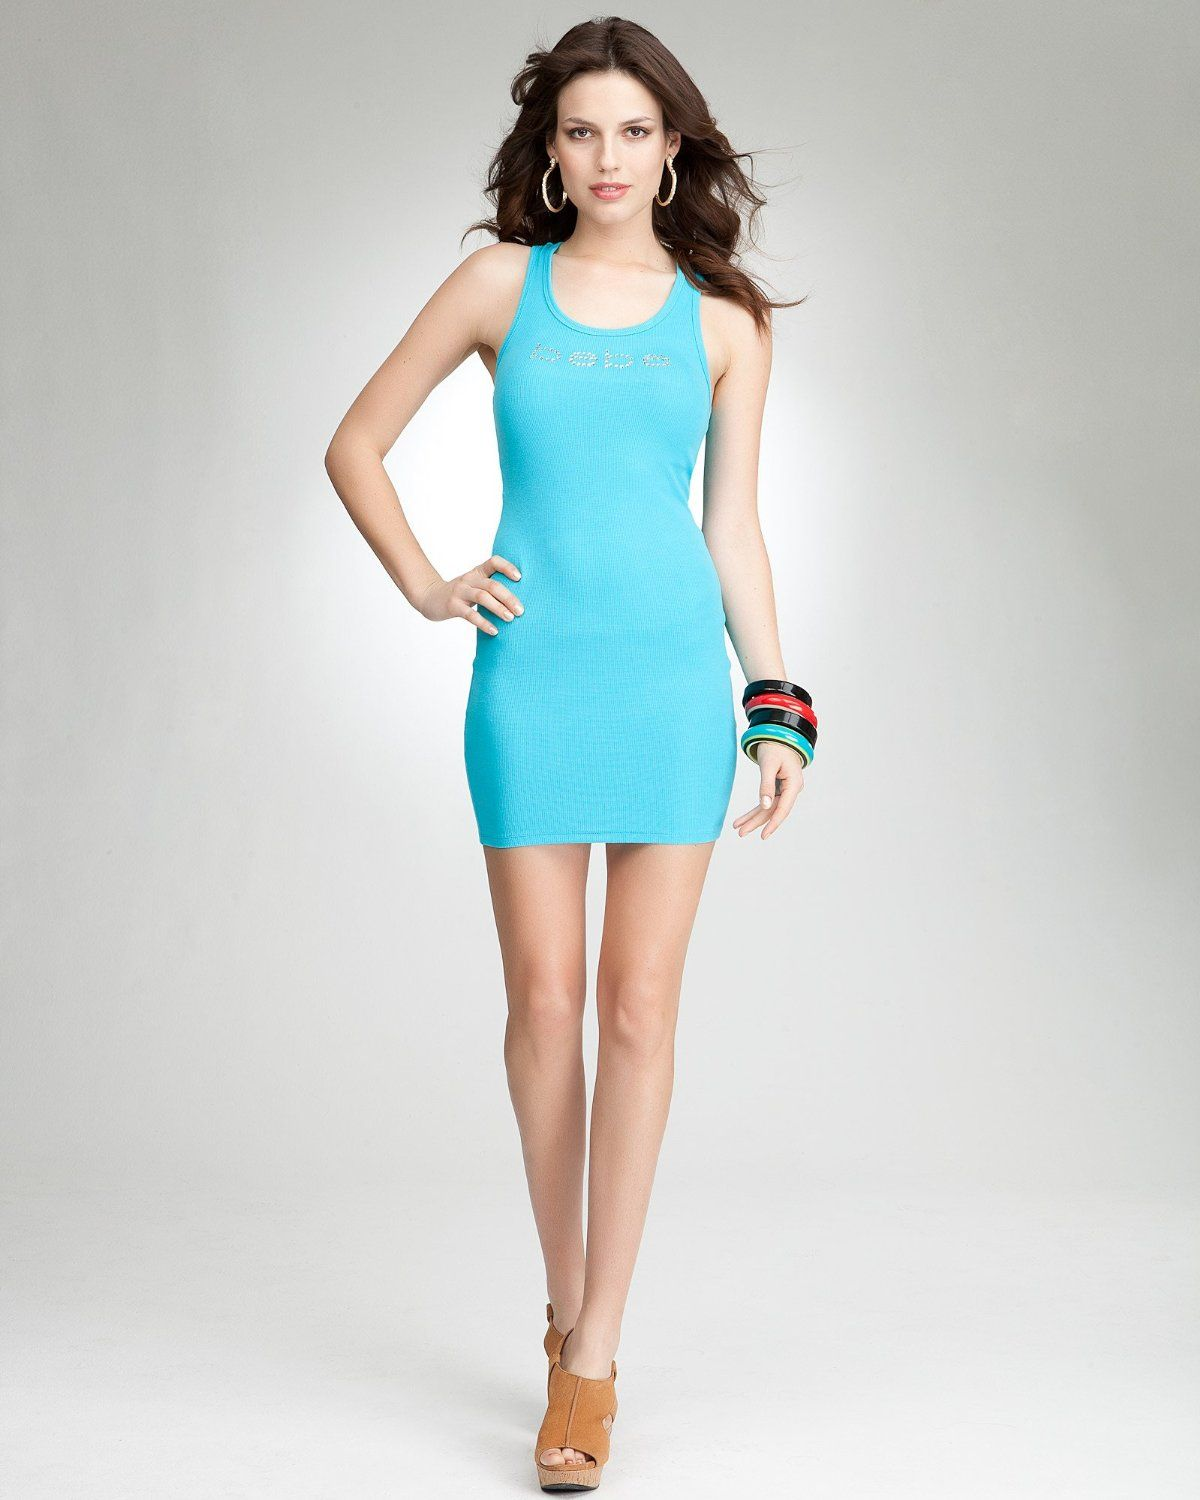 This Was An Excellent T Shirt And Exactly What I Wanted Ribbed Bodycon Dress Bodycon Dress Skinny Bodycon Dress [ 1500 x 1200 Pixel ]